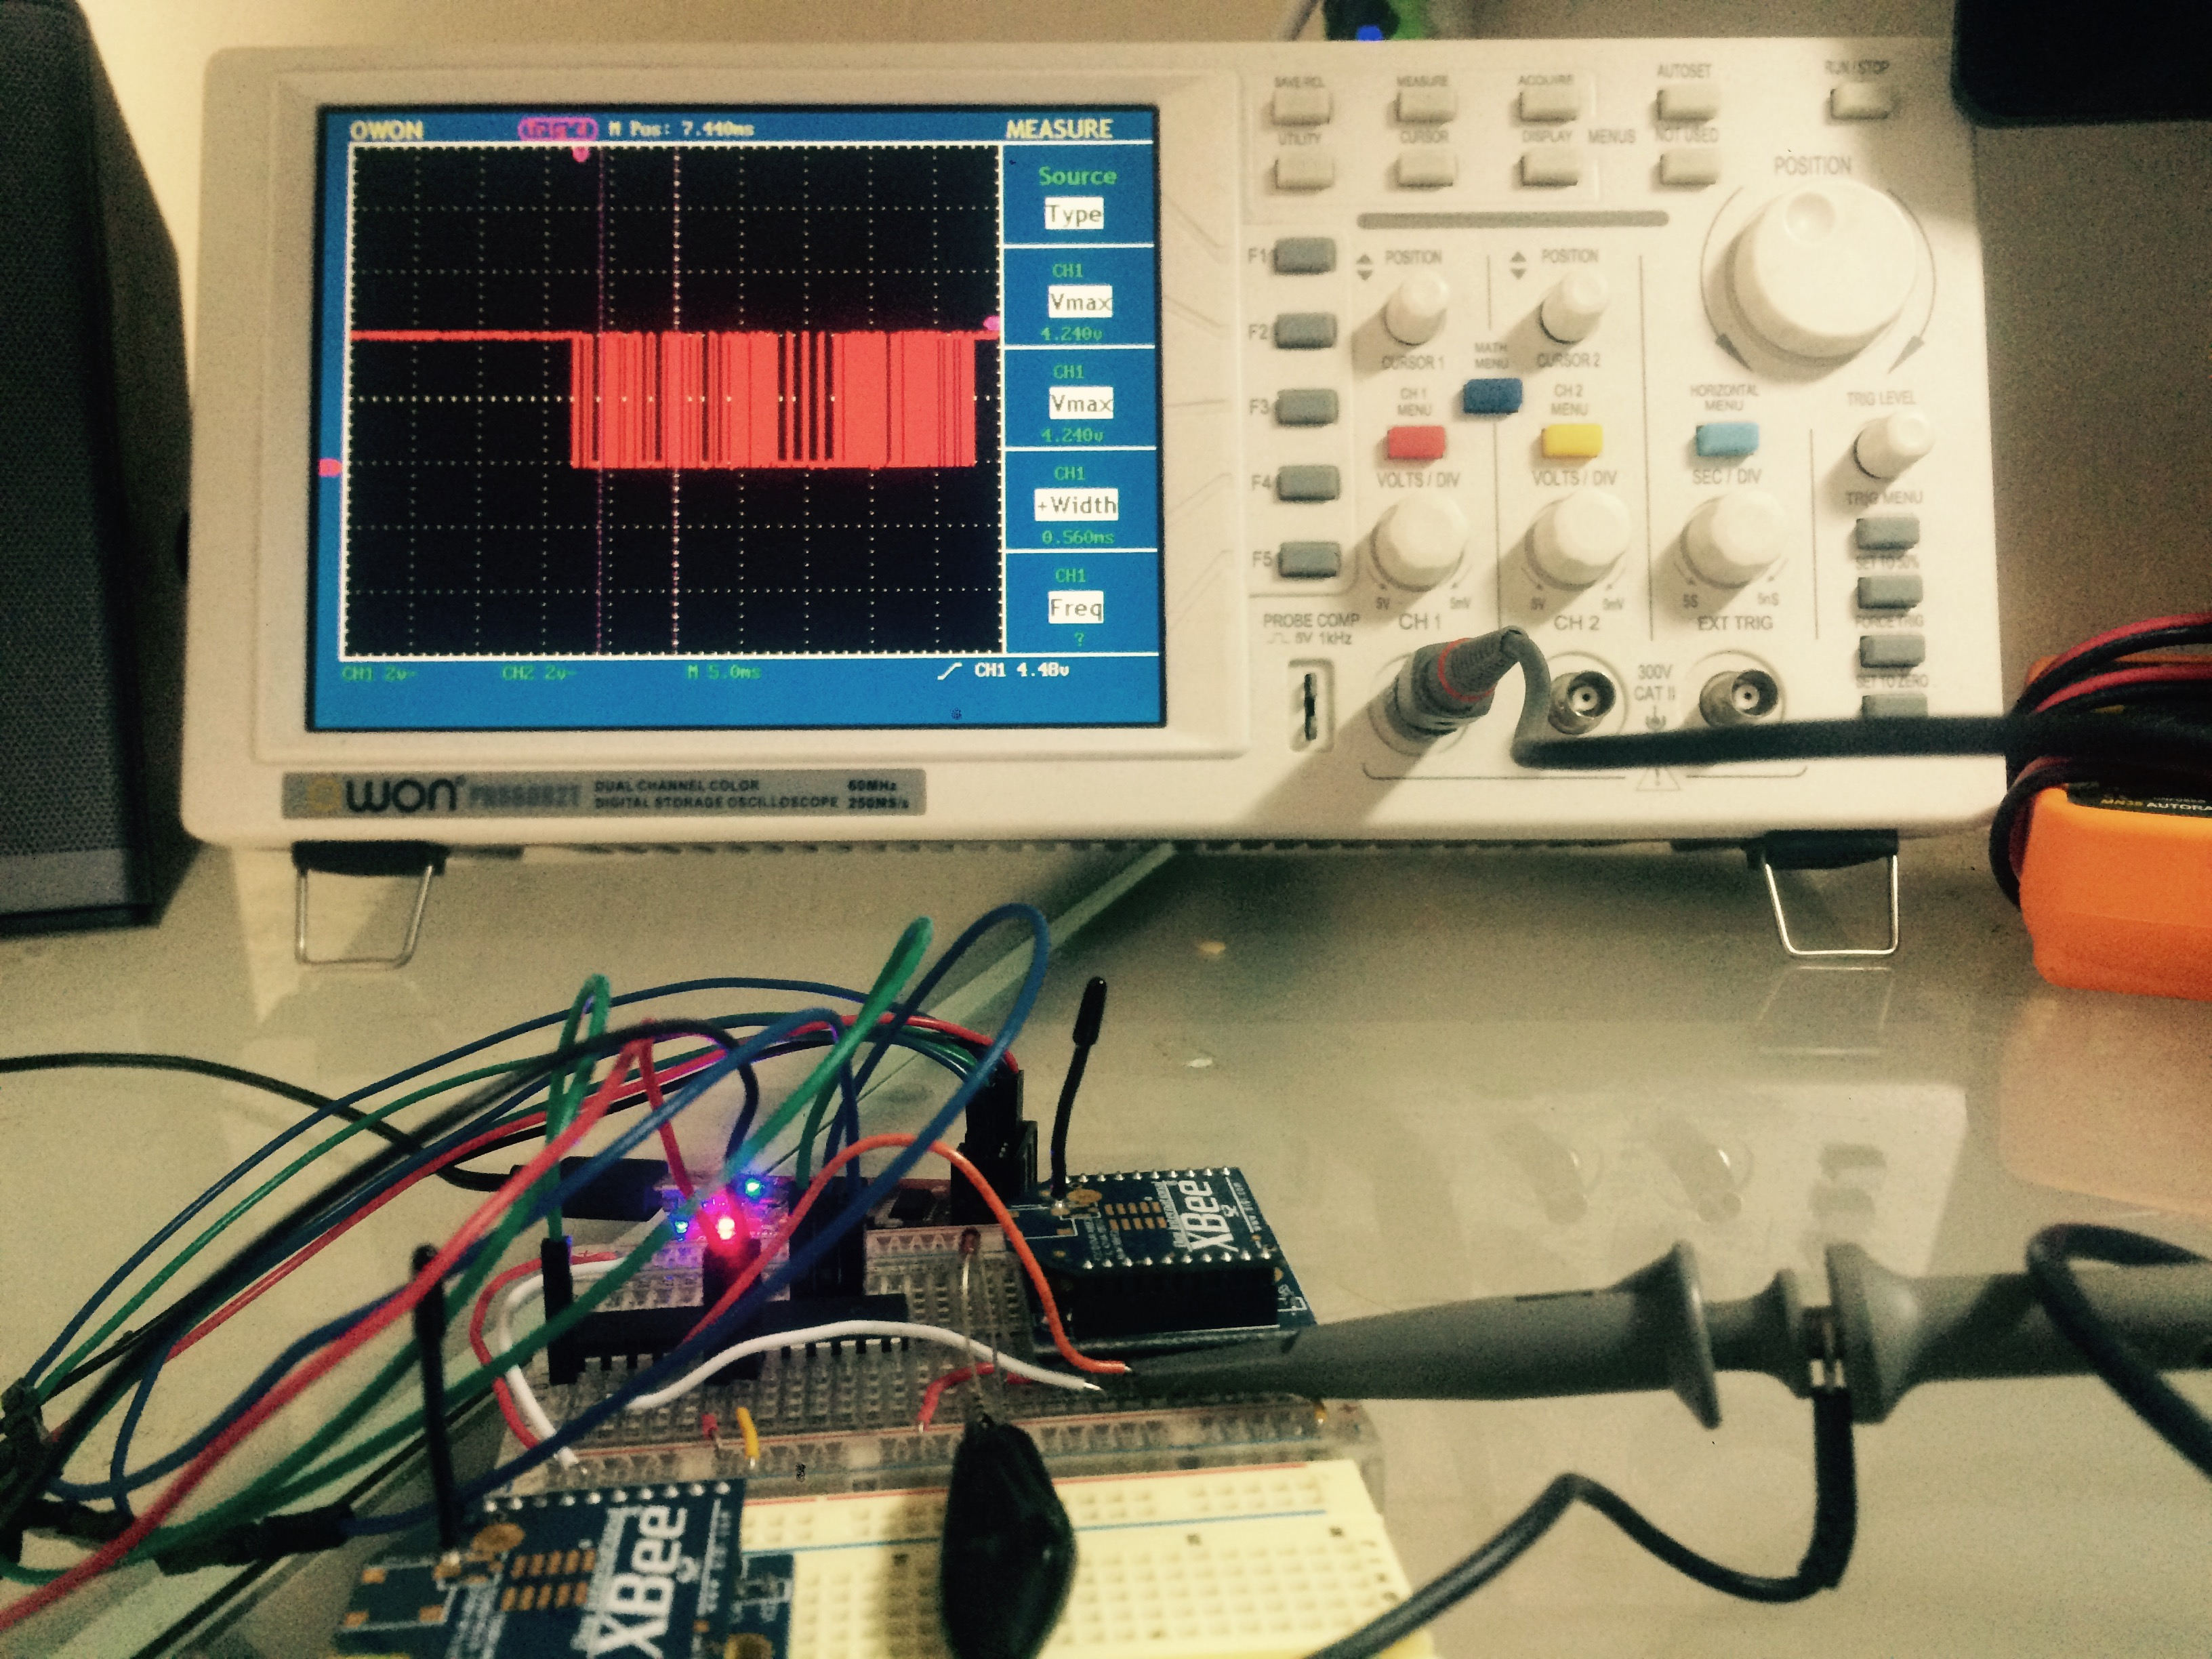 Debugging USART on an Atmel ATMega328P Microcontroller